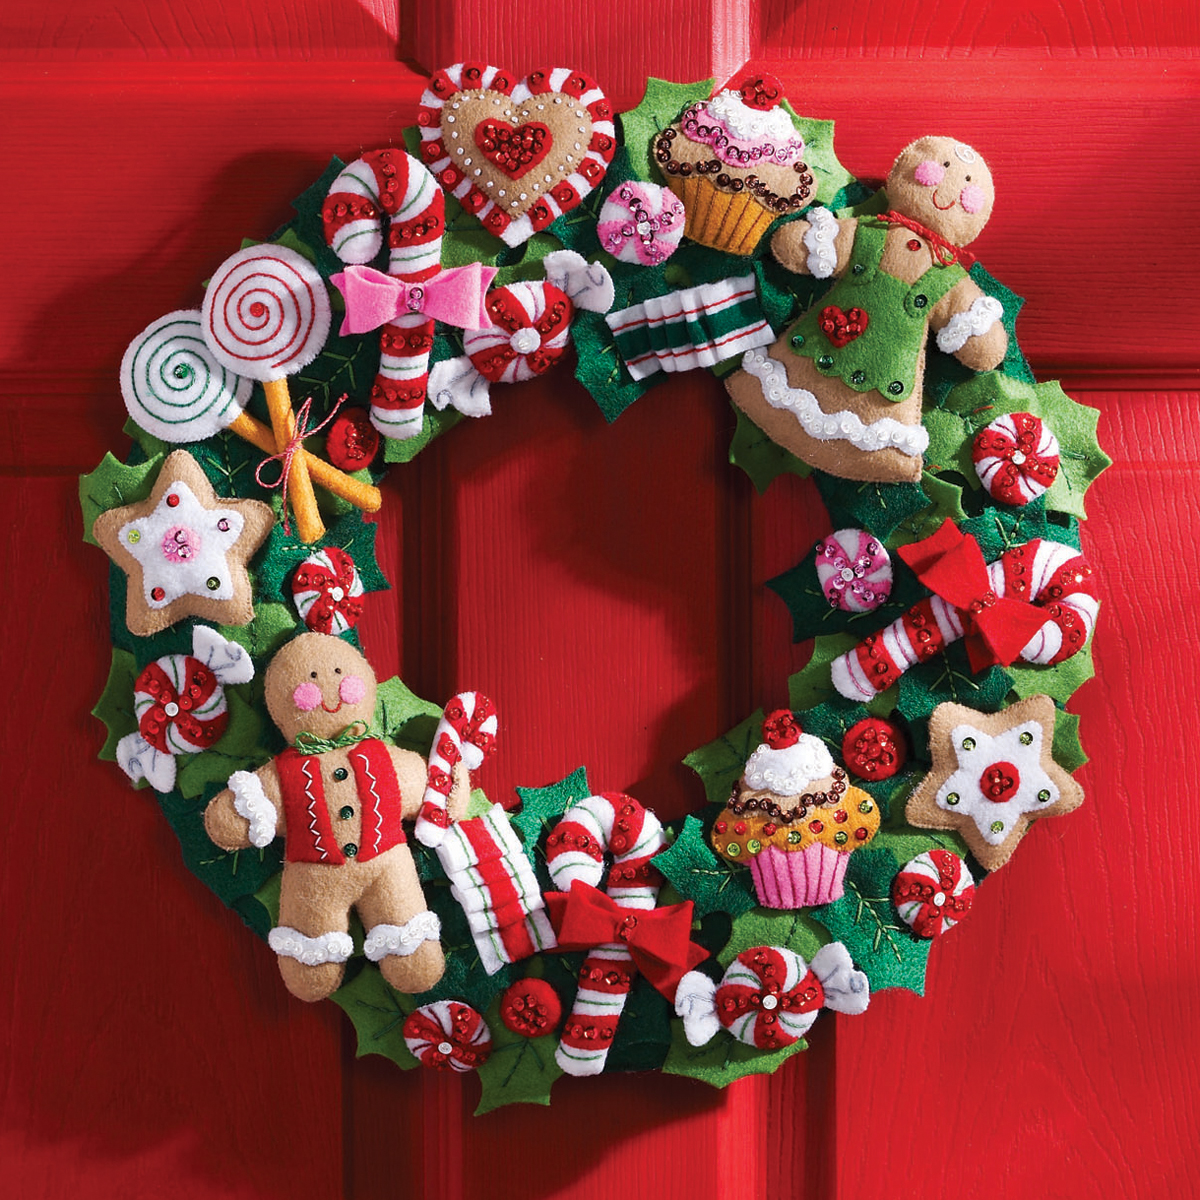 Bucilla Felt Wreath Kit, Cookies and Candy